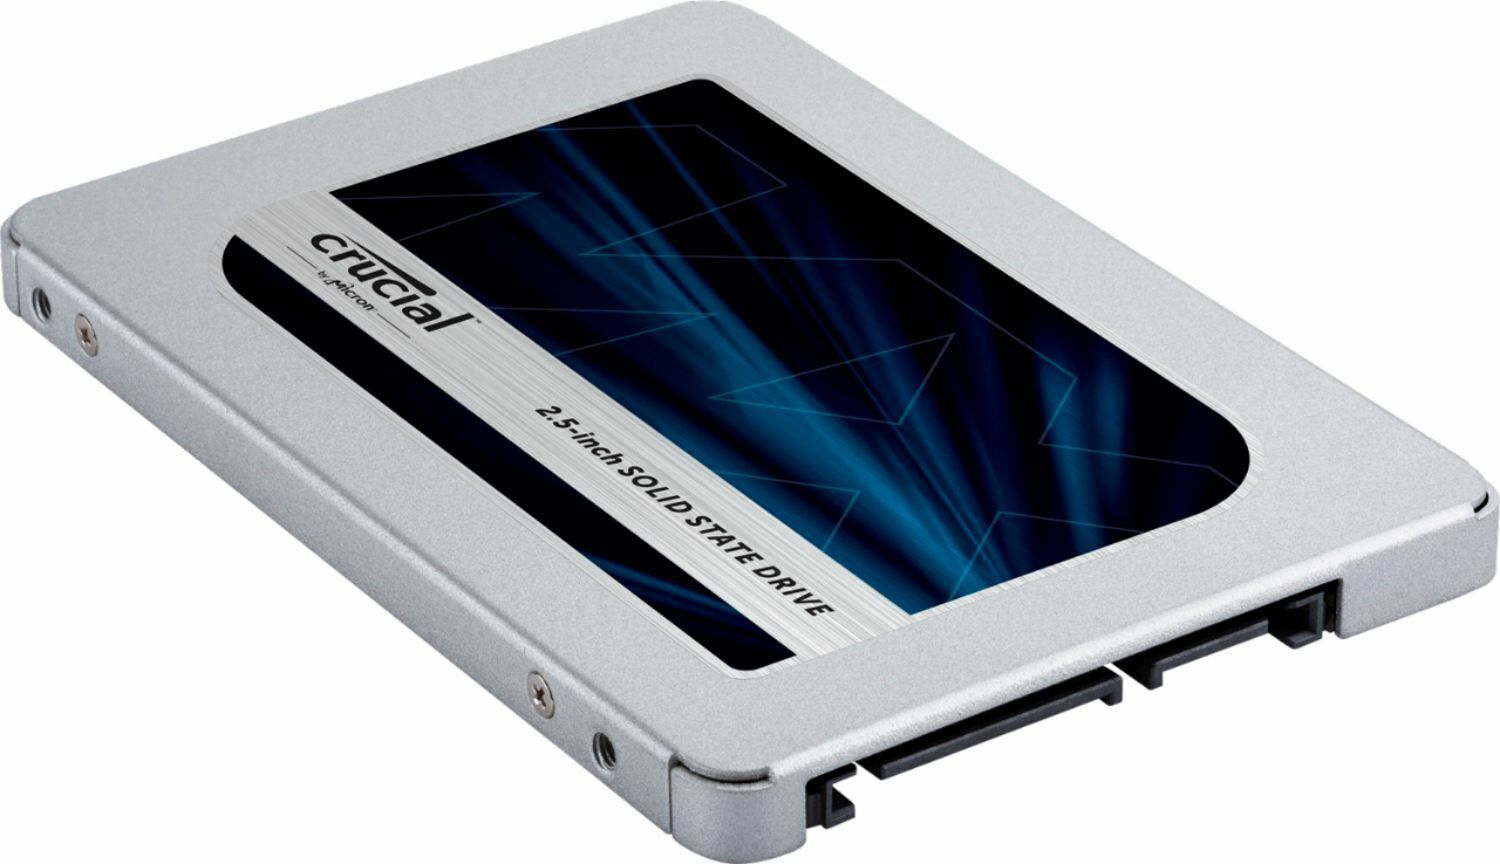 Crucial - MX500 500GB 3D NAND SATA 2.5 Inch Internal Solid State Drive. Buy it now for 53.99